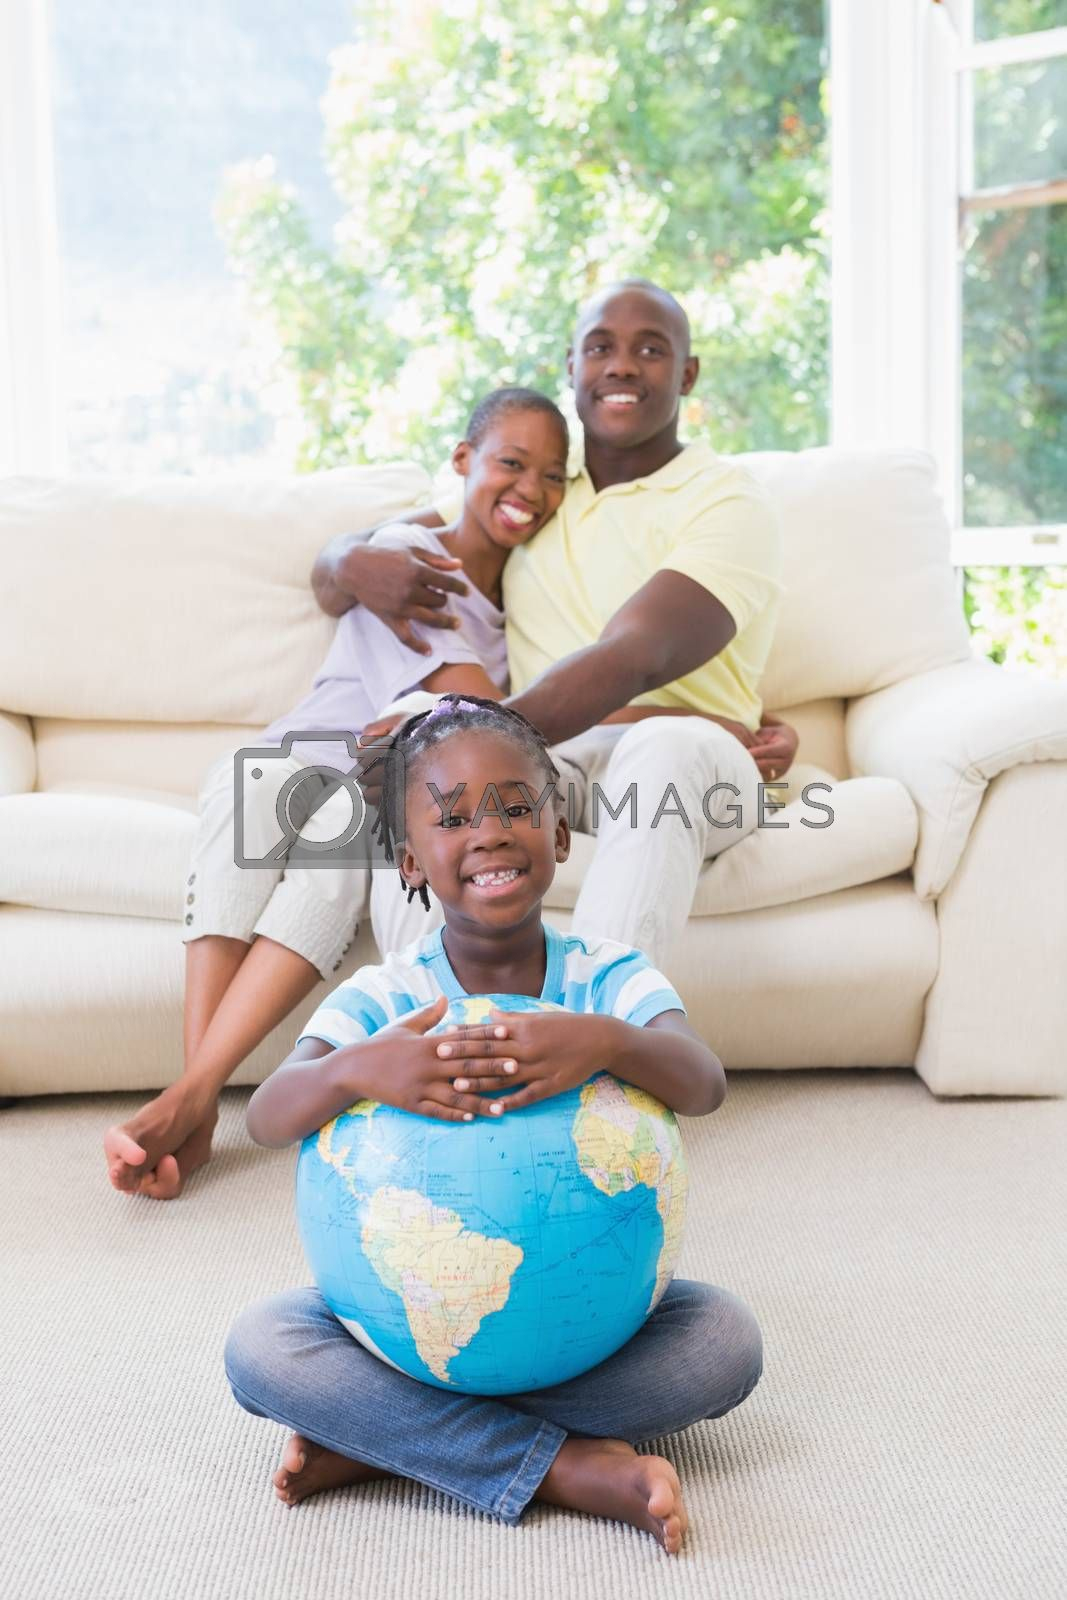 Royalty free image of Portrait of a happy smiling couple sitting on couch and daughter taking a globe  by Wavebreakmedia